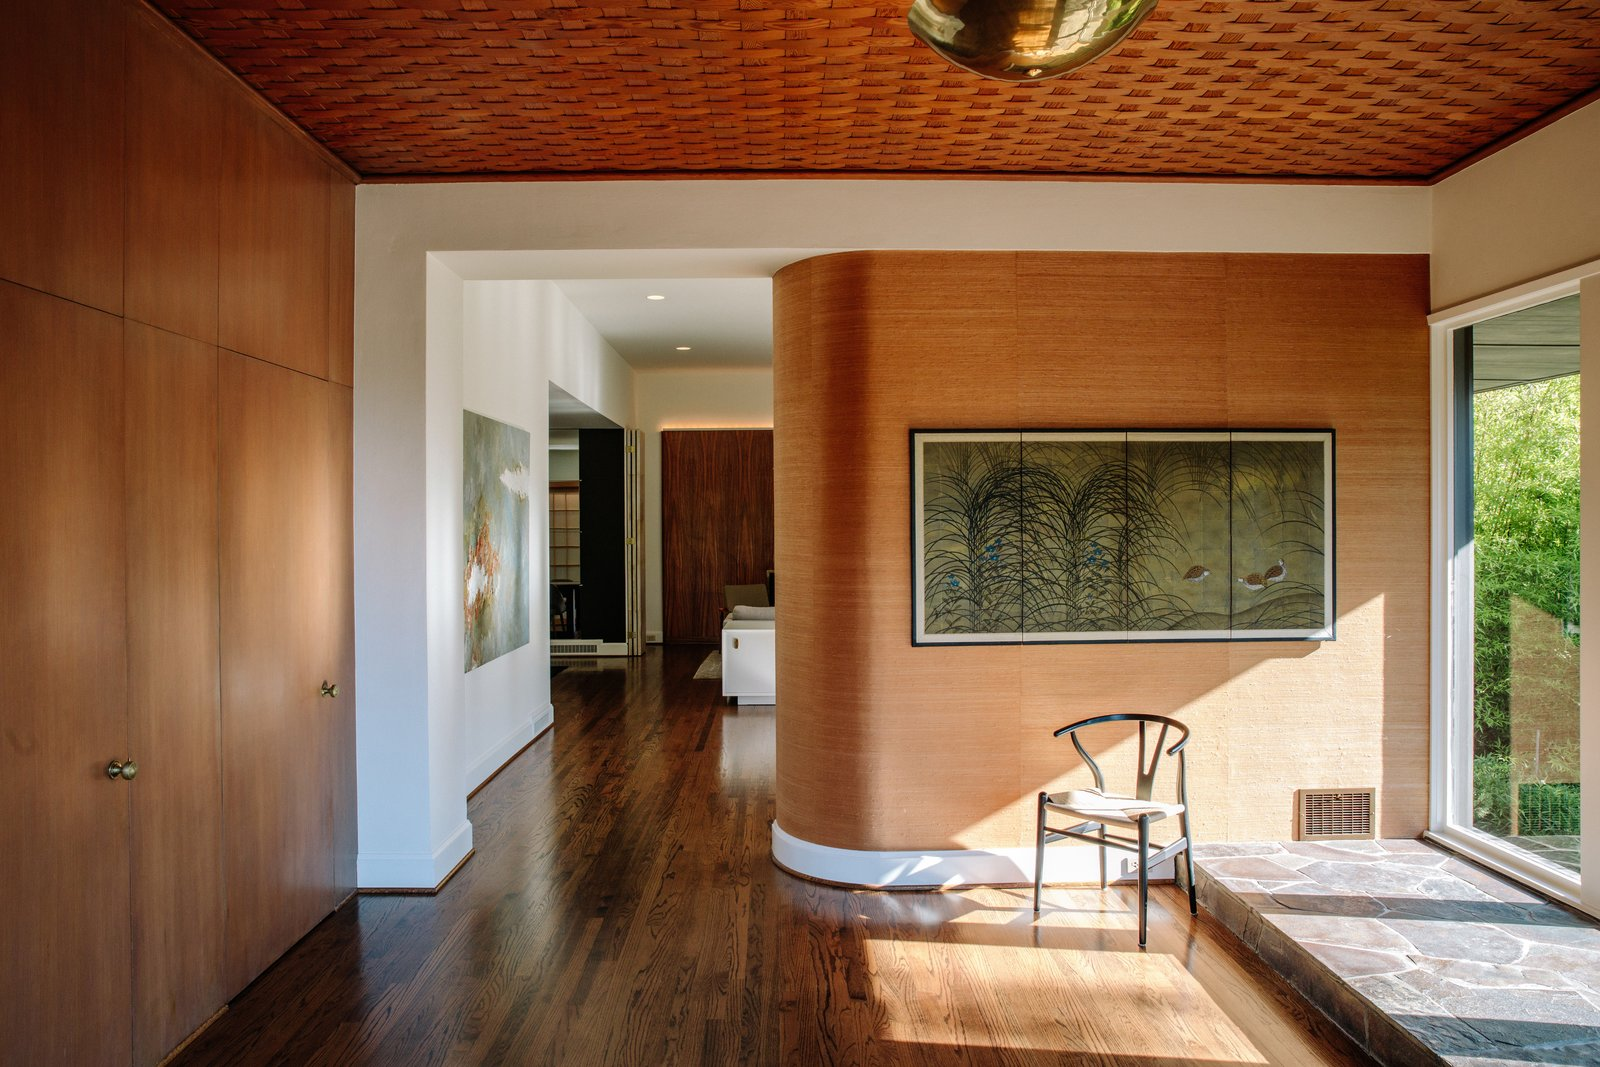 A curved zebrawood wall greets visitors in the foyer. Tagged: Living Room, Chair, Medium Hardwood Floor, and Ceiling Lighting.  Photo 3 of 15 in Nearly 80 Years Later, an Architect Rescues a Japanese-Inspired  Masterwork Designed by His Father